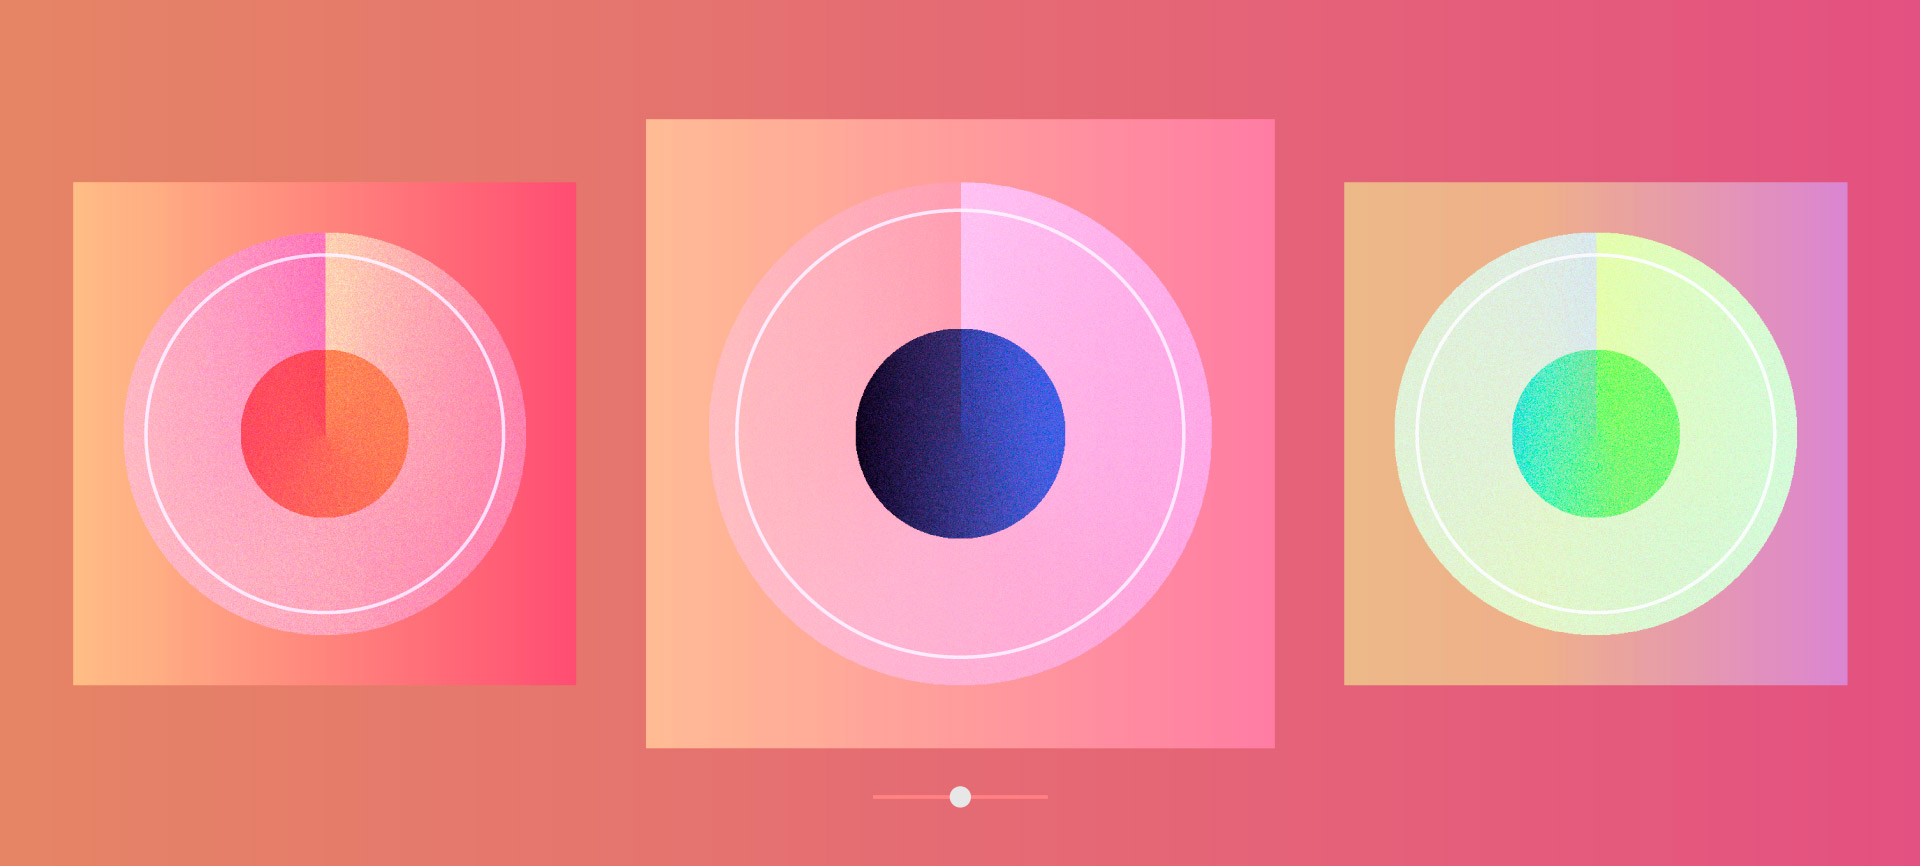 8th image of Google Music project